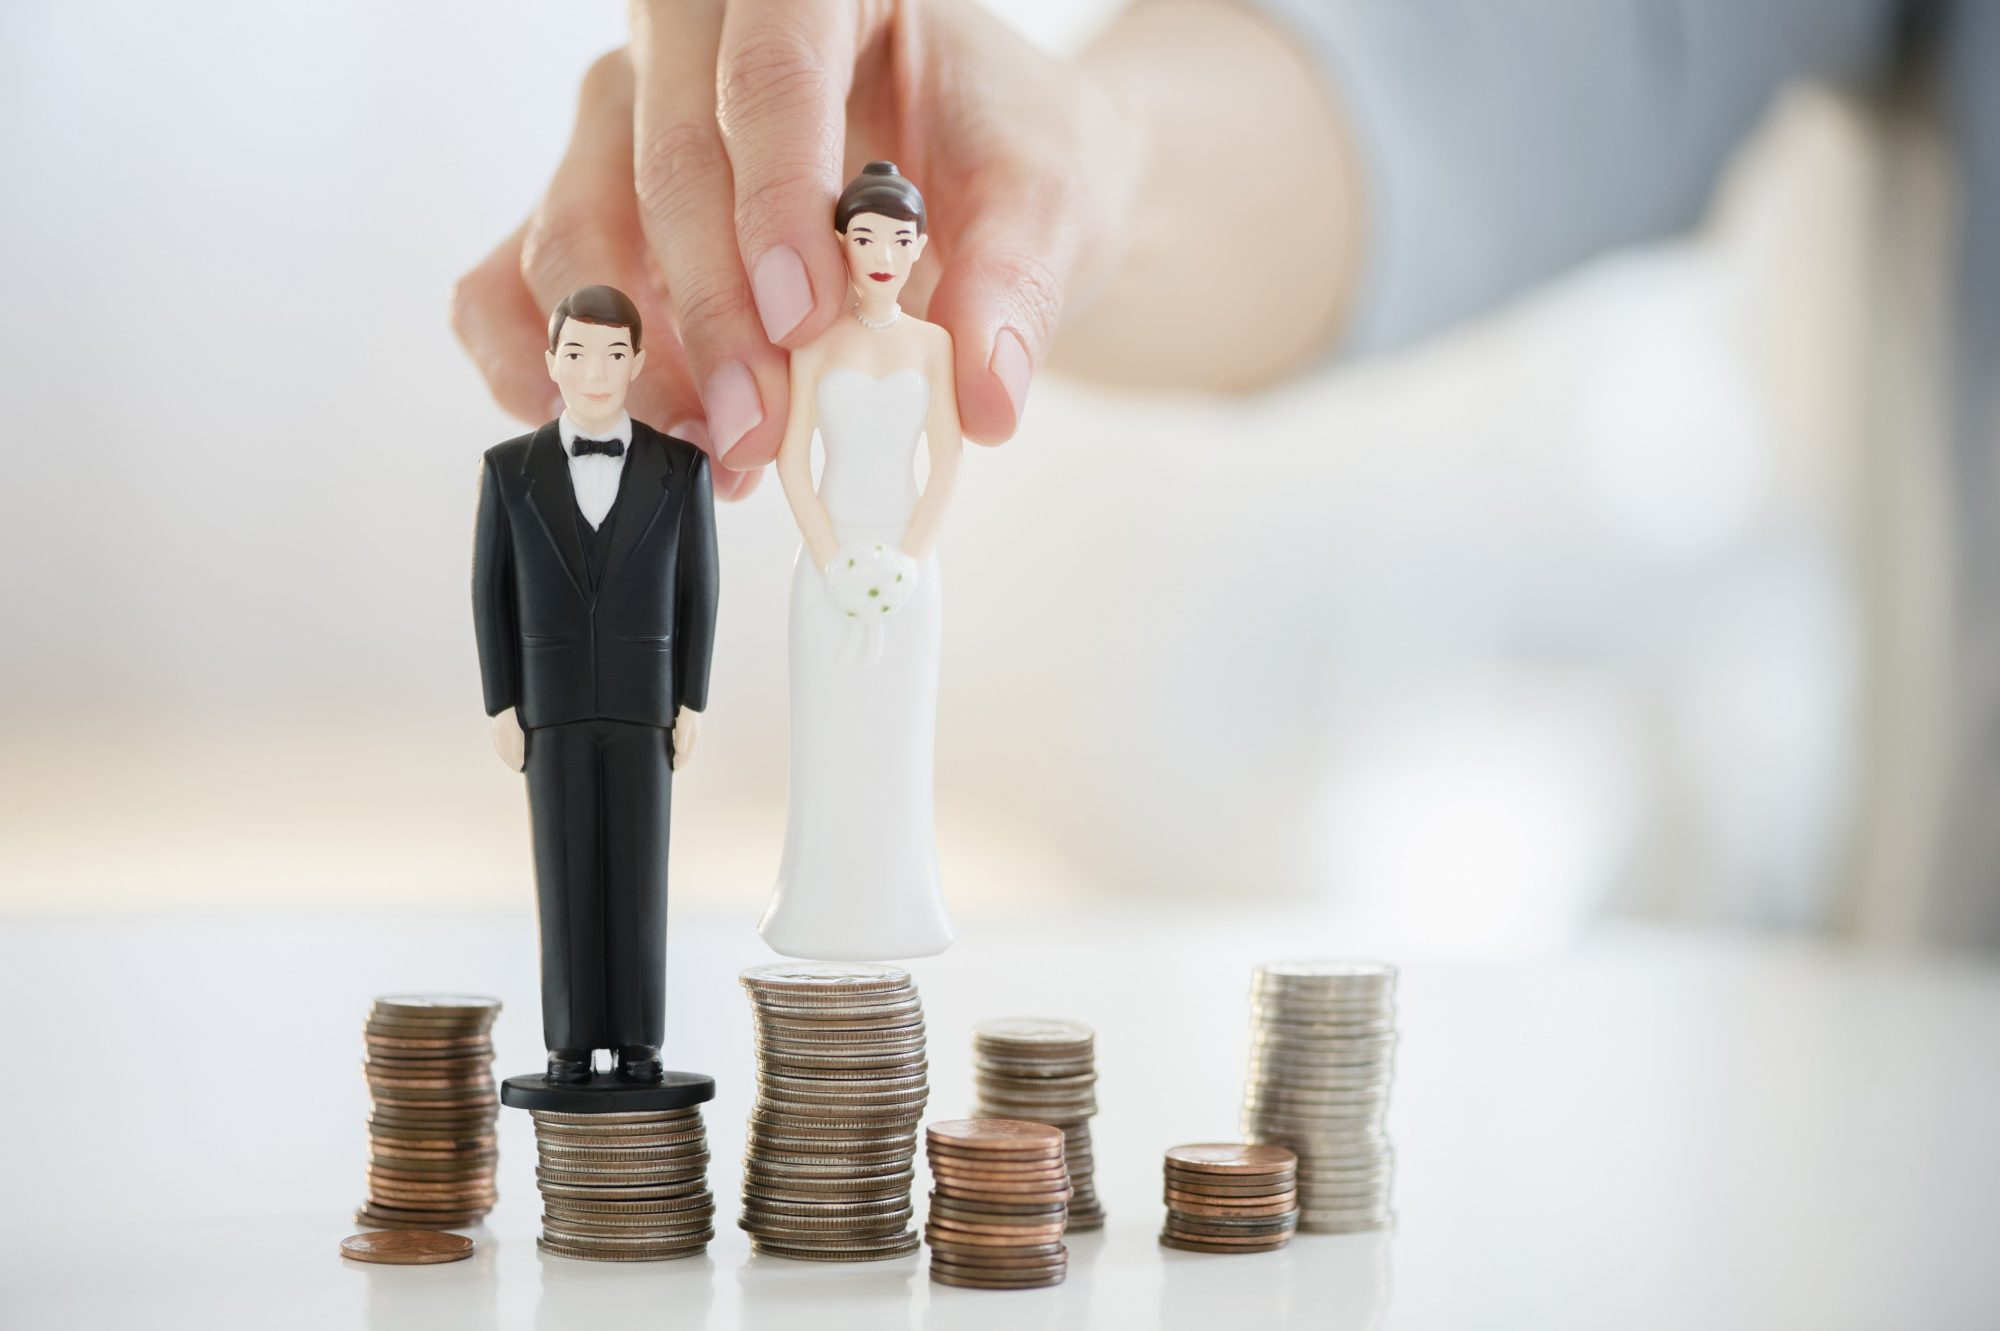 How to Keep Bad Credit From Ruining Your Marriage